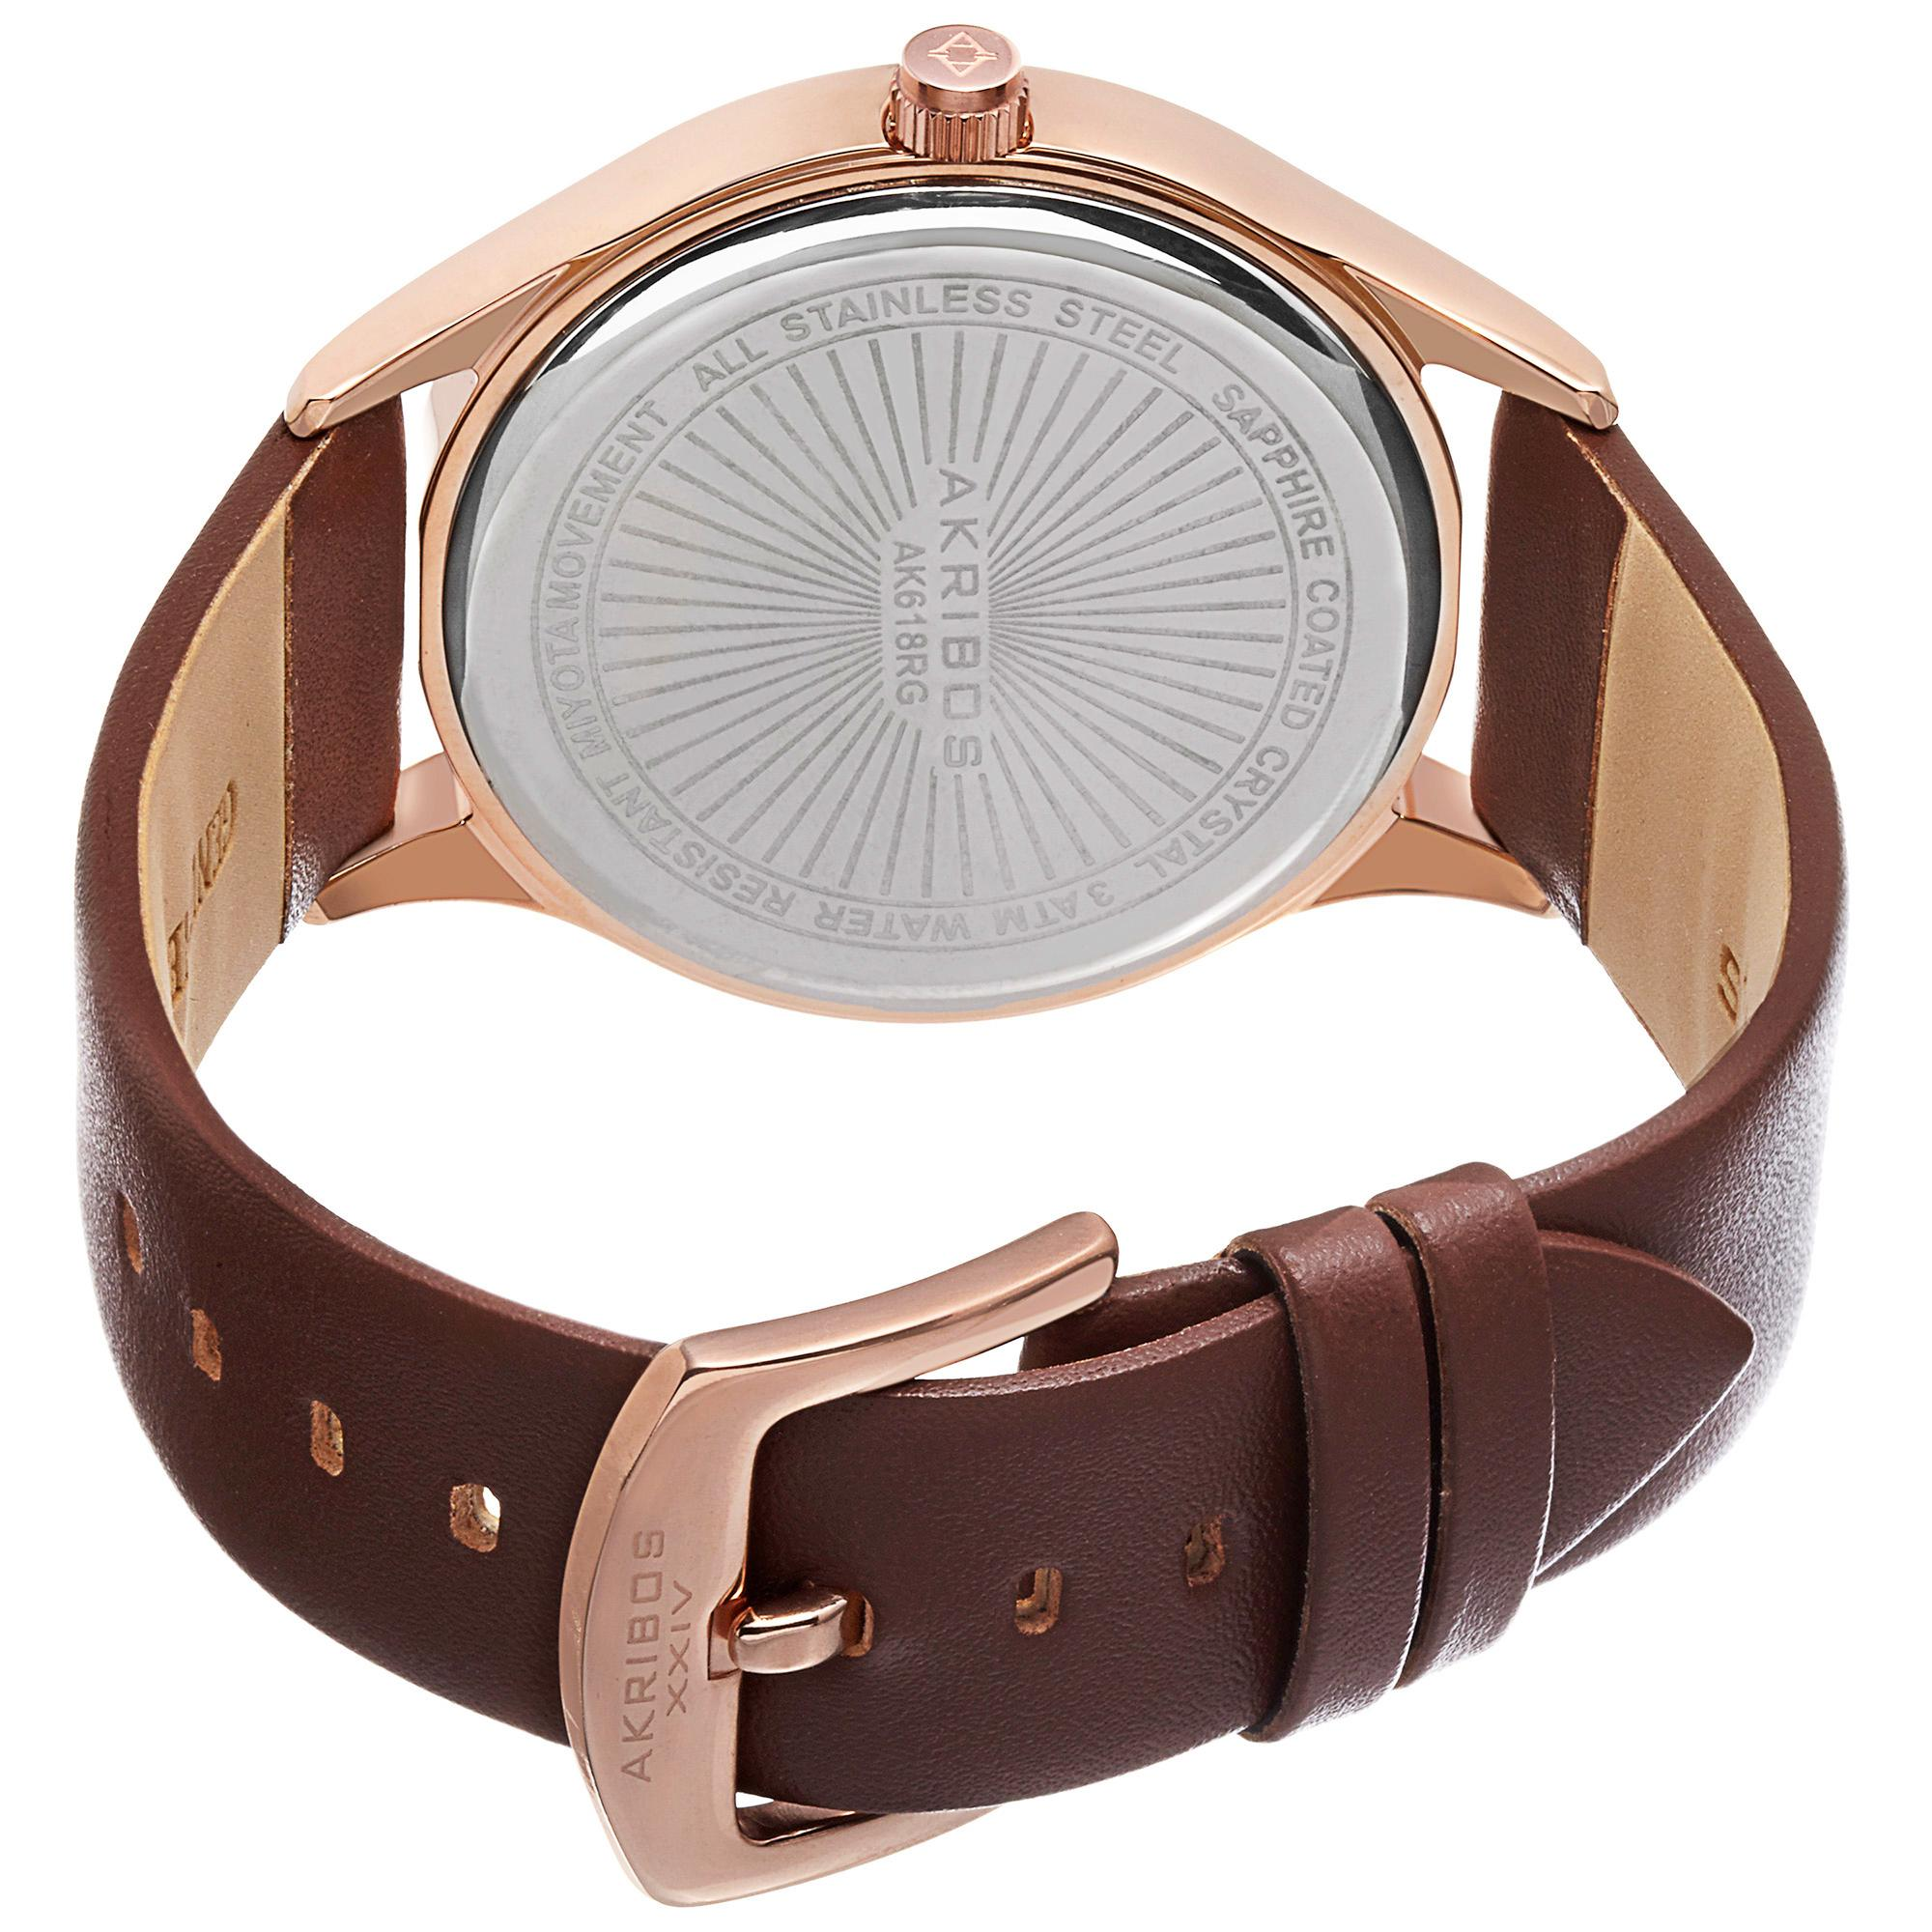 orion s steel watches swiss stainless front brown plated rosegold bbdf watch jbw gold men products multifunction rose ctw leather diamond